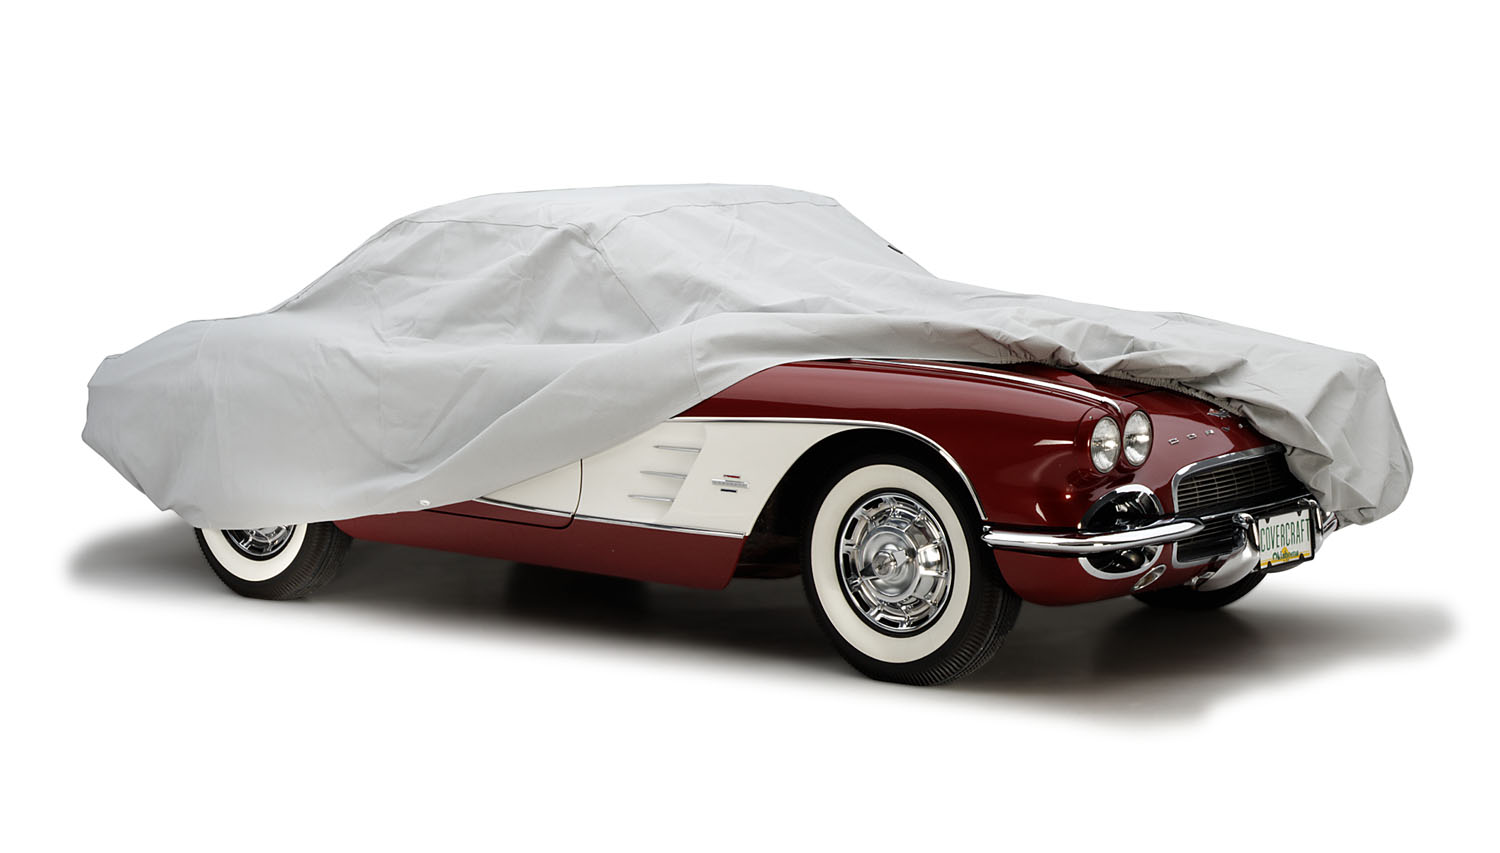 Covercraft Car Cover (C9784TK)